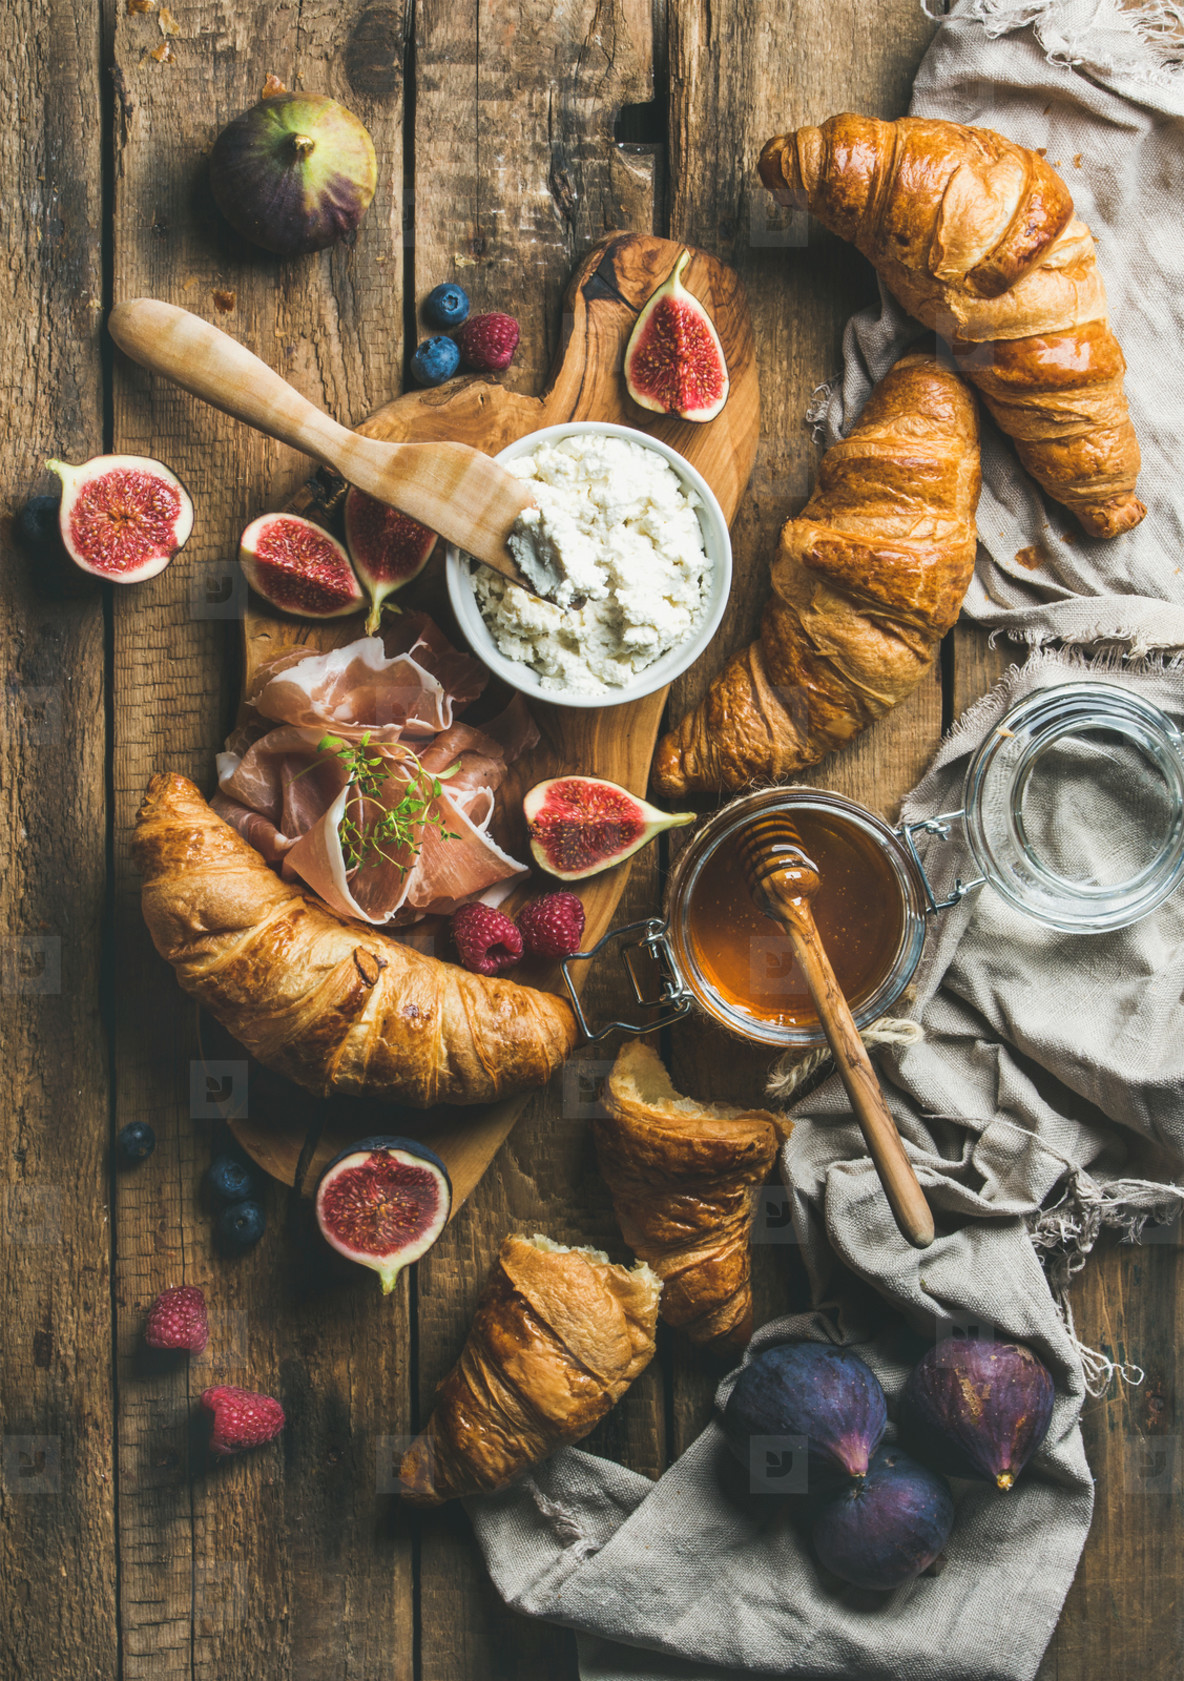 Croissants  ricotta cheese  figs  fresh berries  prosciutto and honey